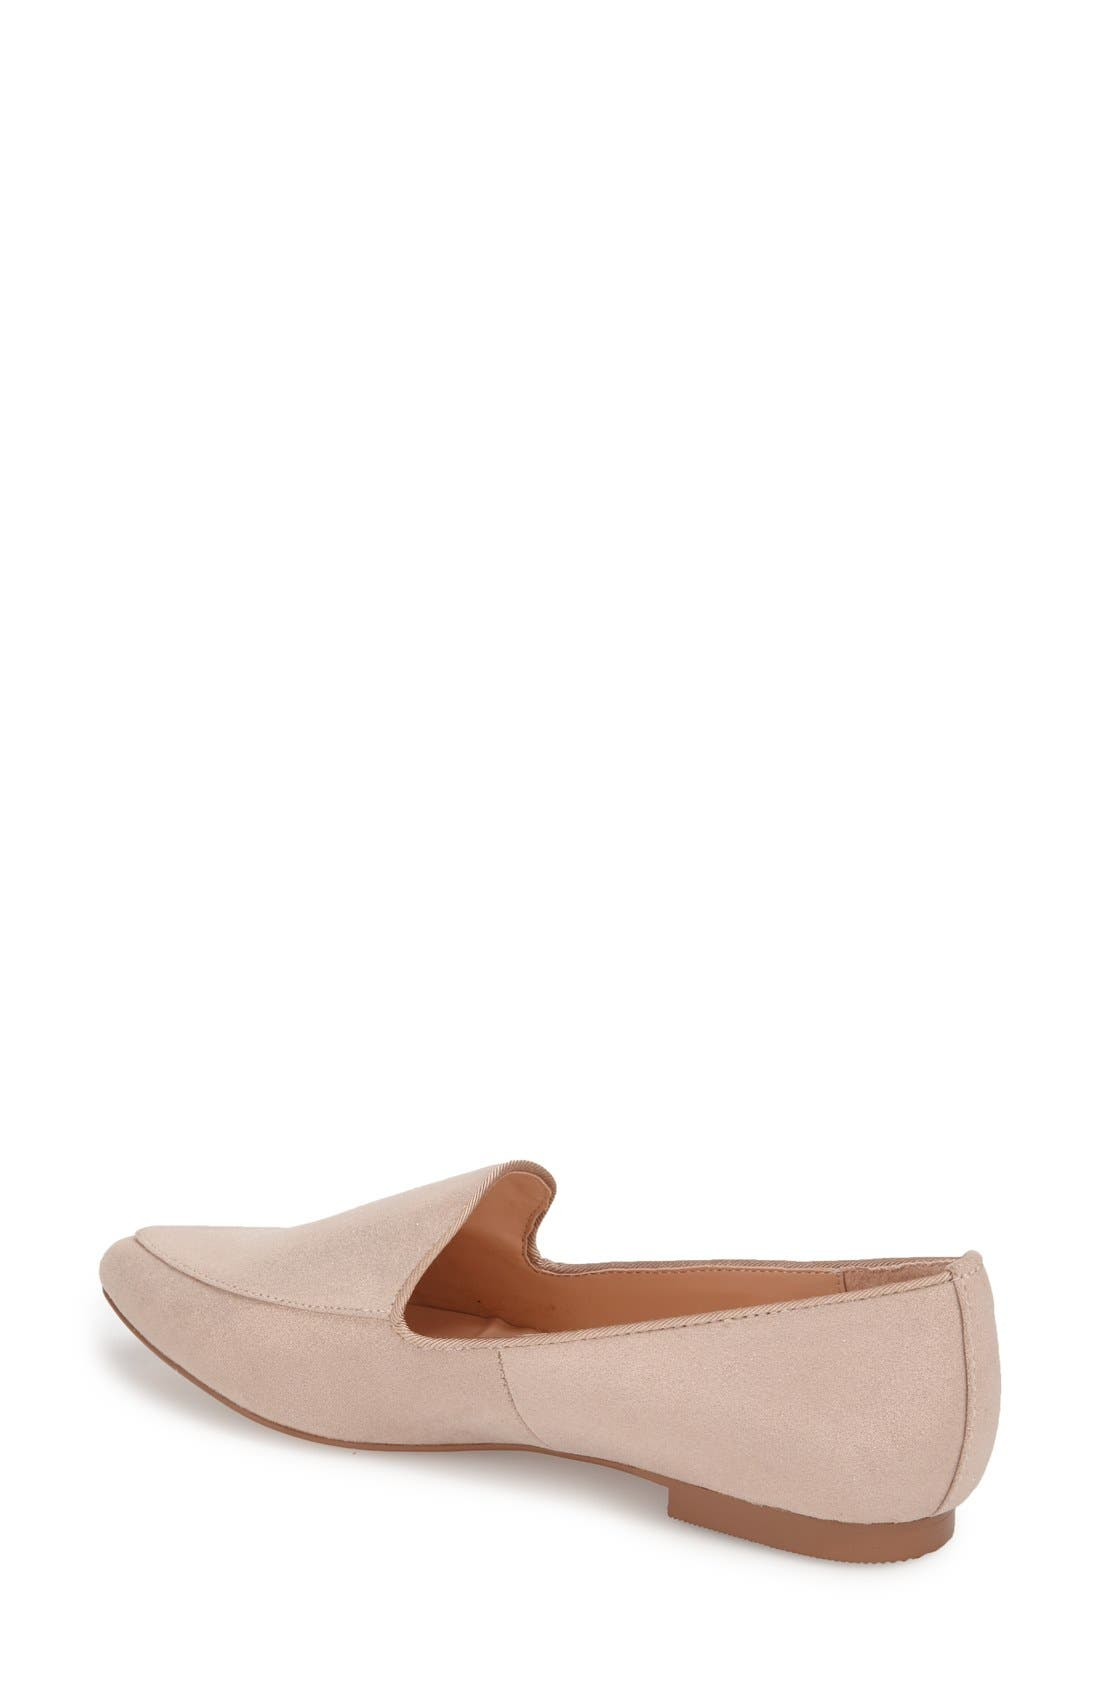 SOLE SOCIETY, 'Sean' Pointy Toe Loafer, Alternate thumbnail 3, color, 285